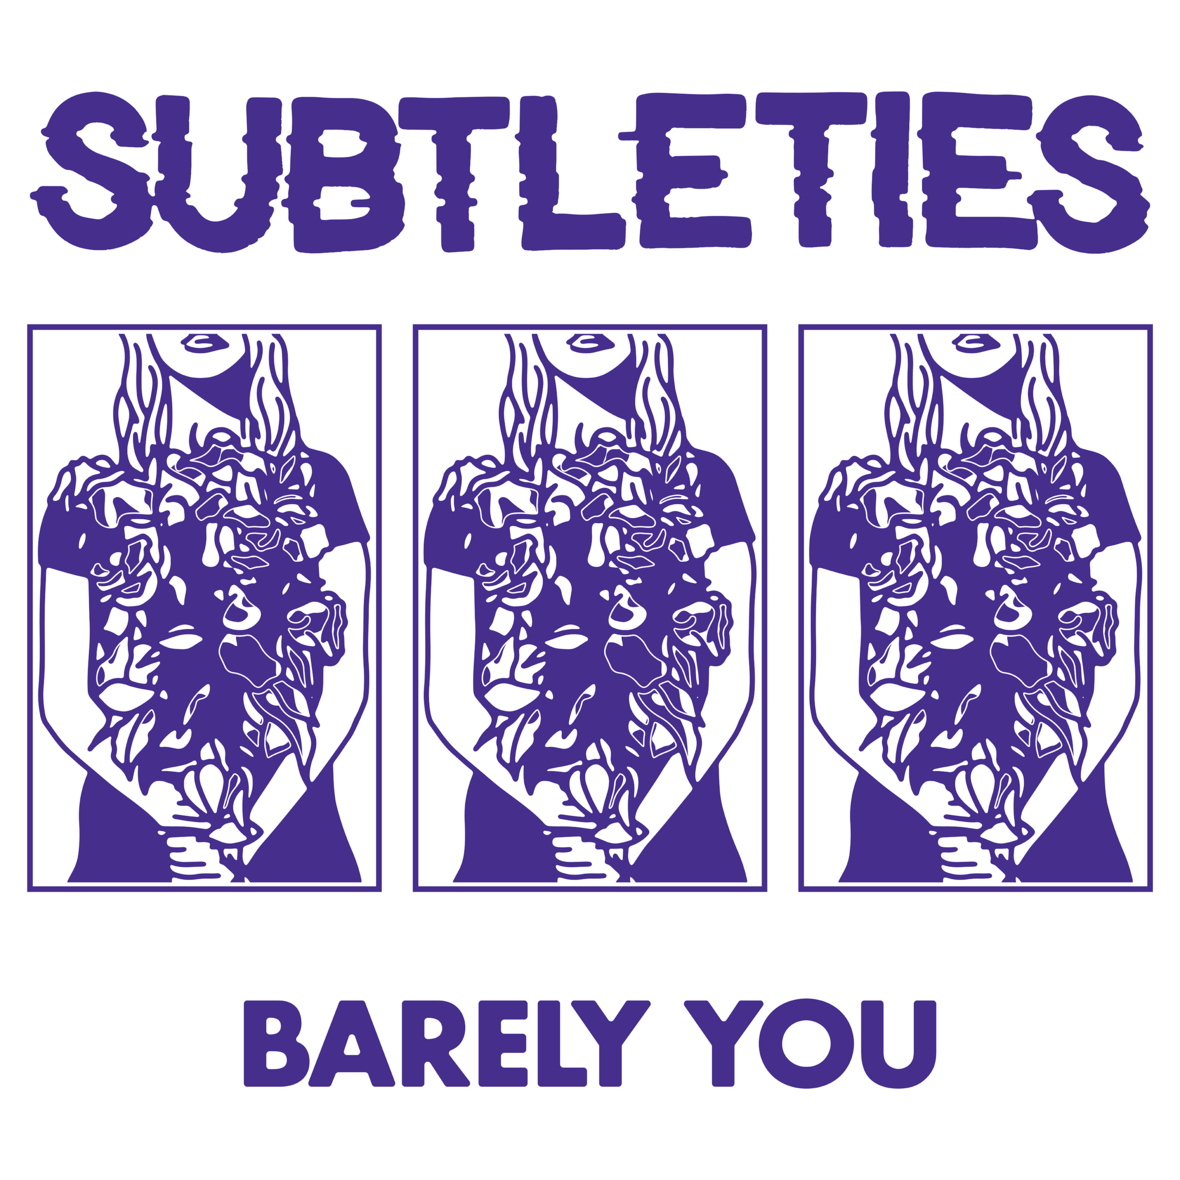 Barely You Art